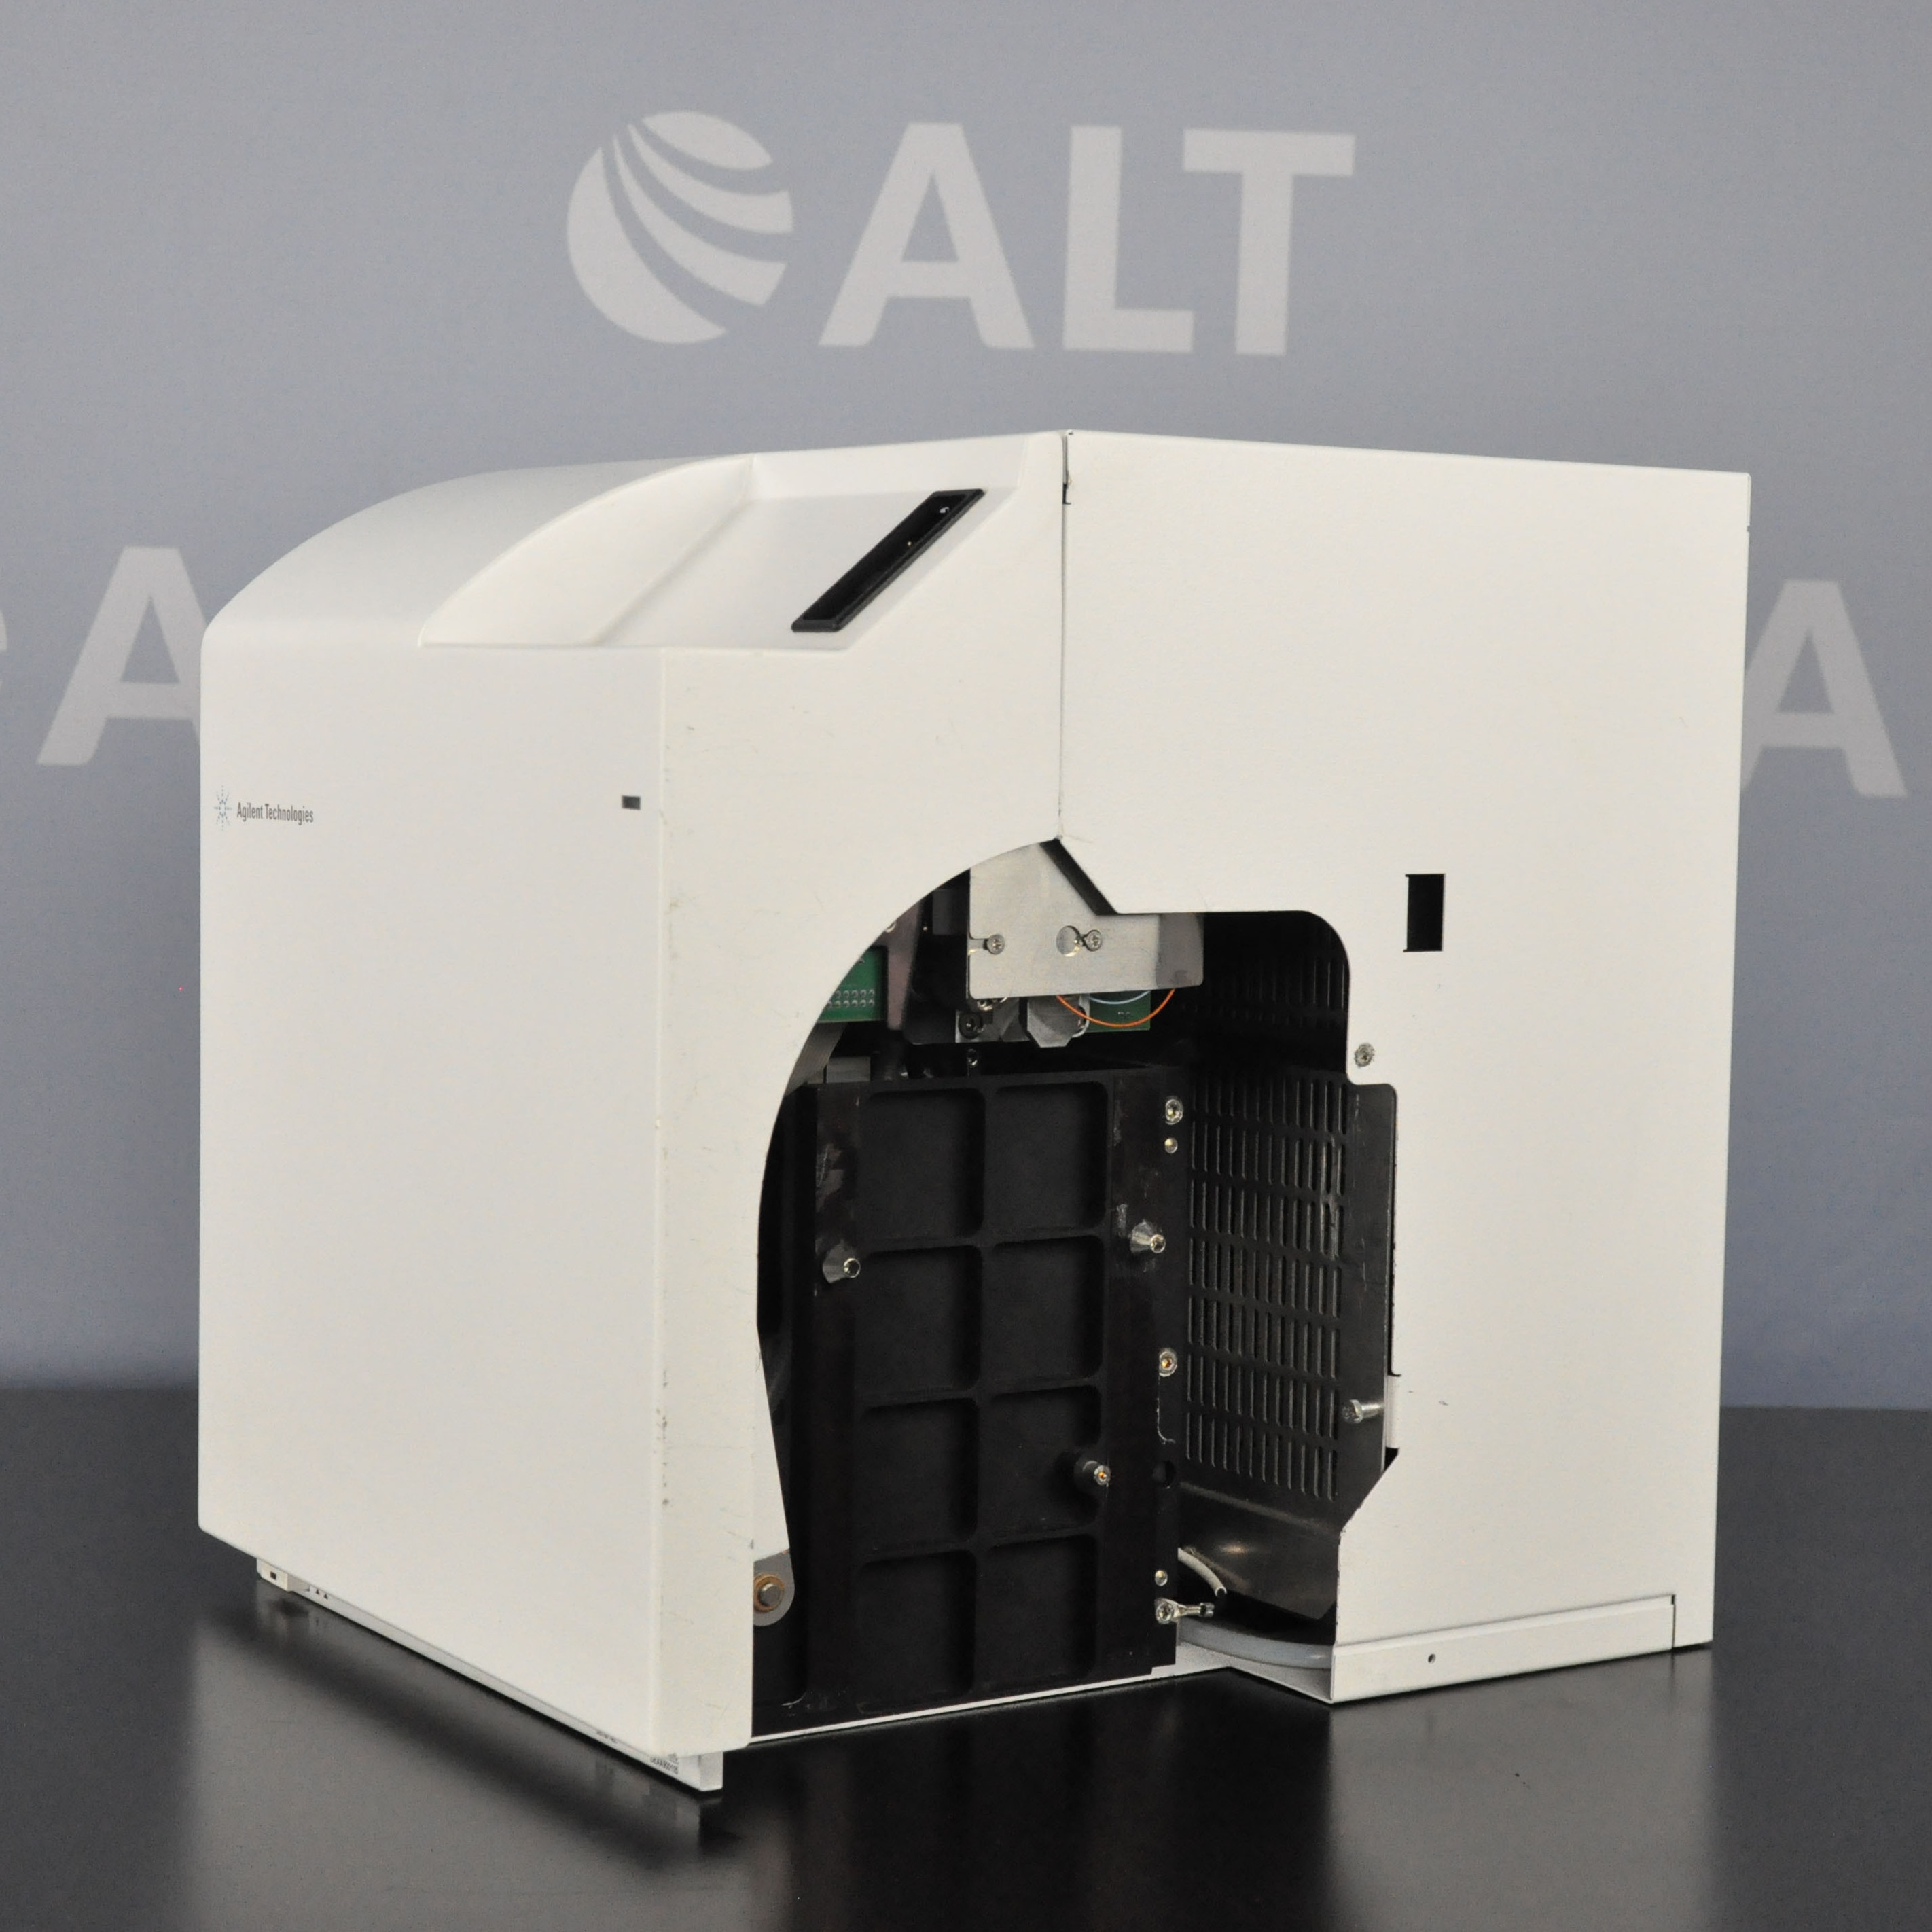 Agilent Technologies 1260 Infinity HPLC-Chip Cube Interface (G4240A) Image